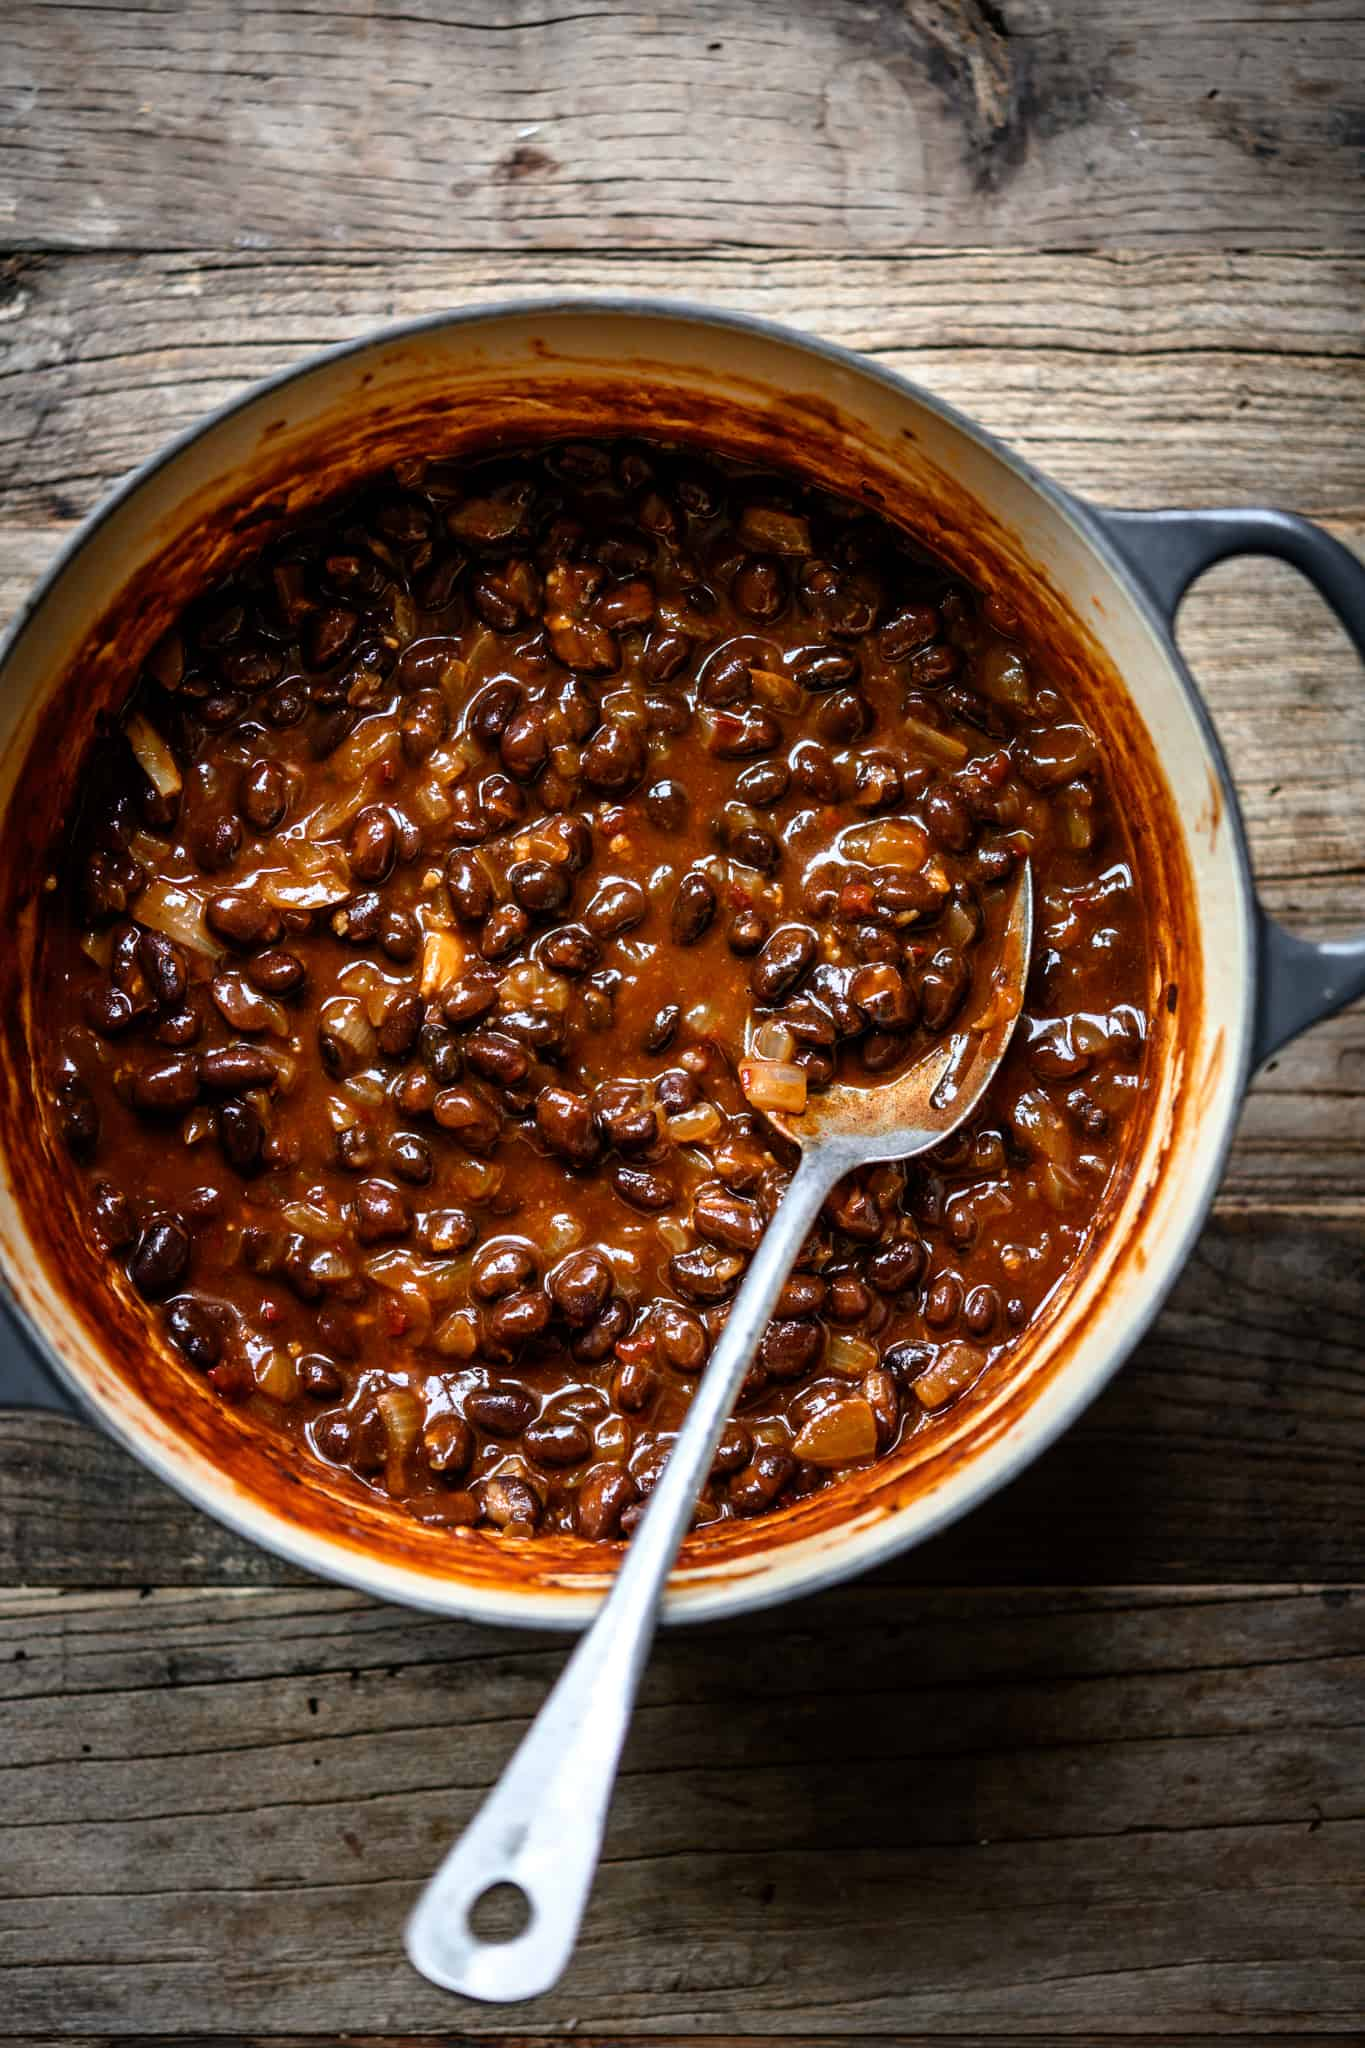 Overhead view of spicy vegan black beans in a large pot